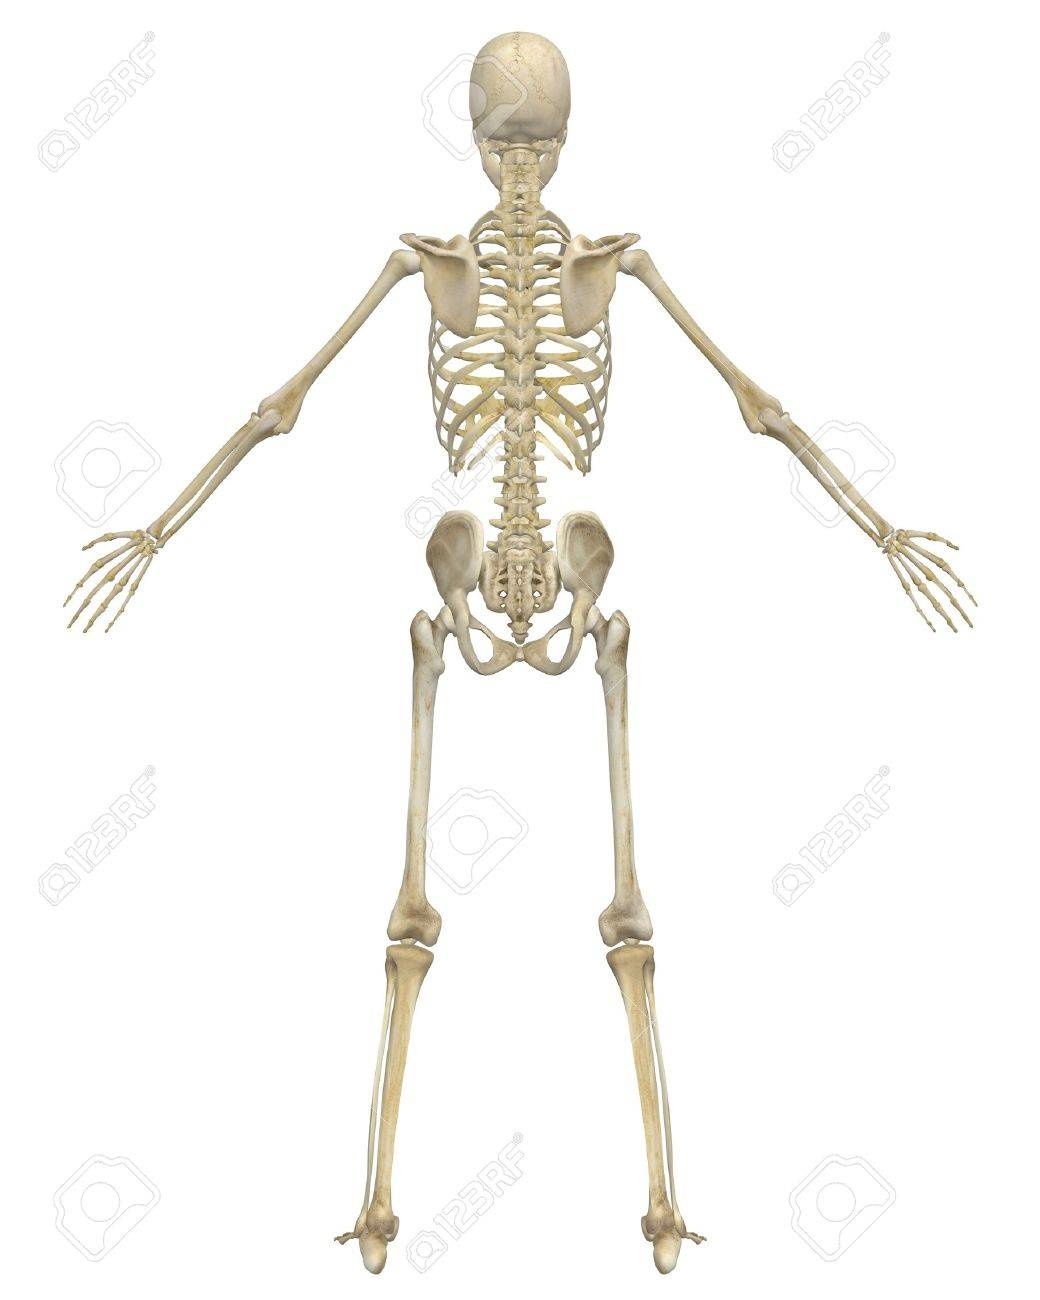 A Rear View Illustration Of The Human Skeletal Anatomy. Very.. Stock ...